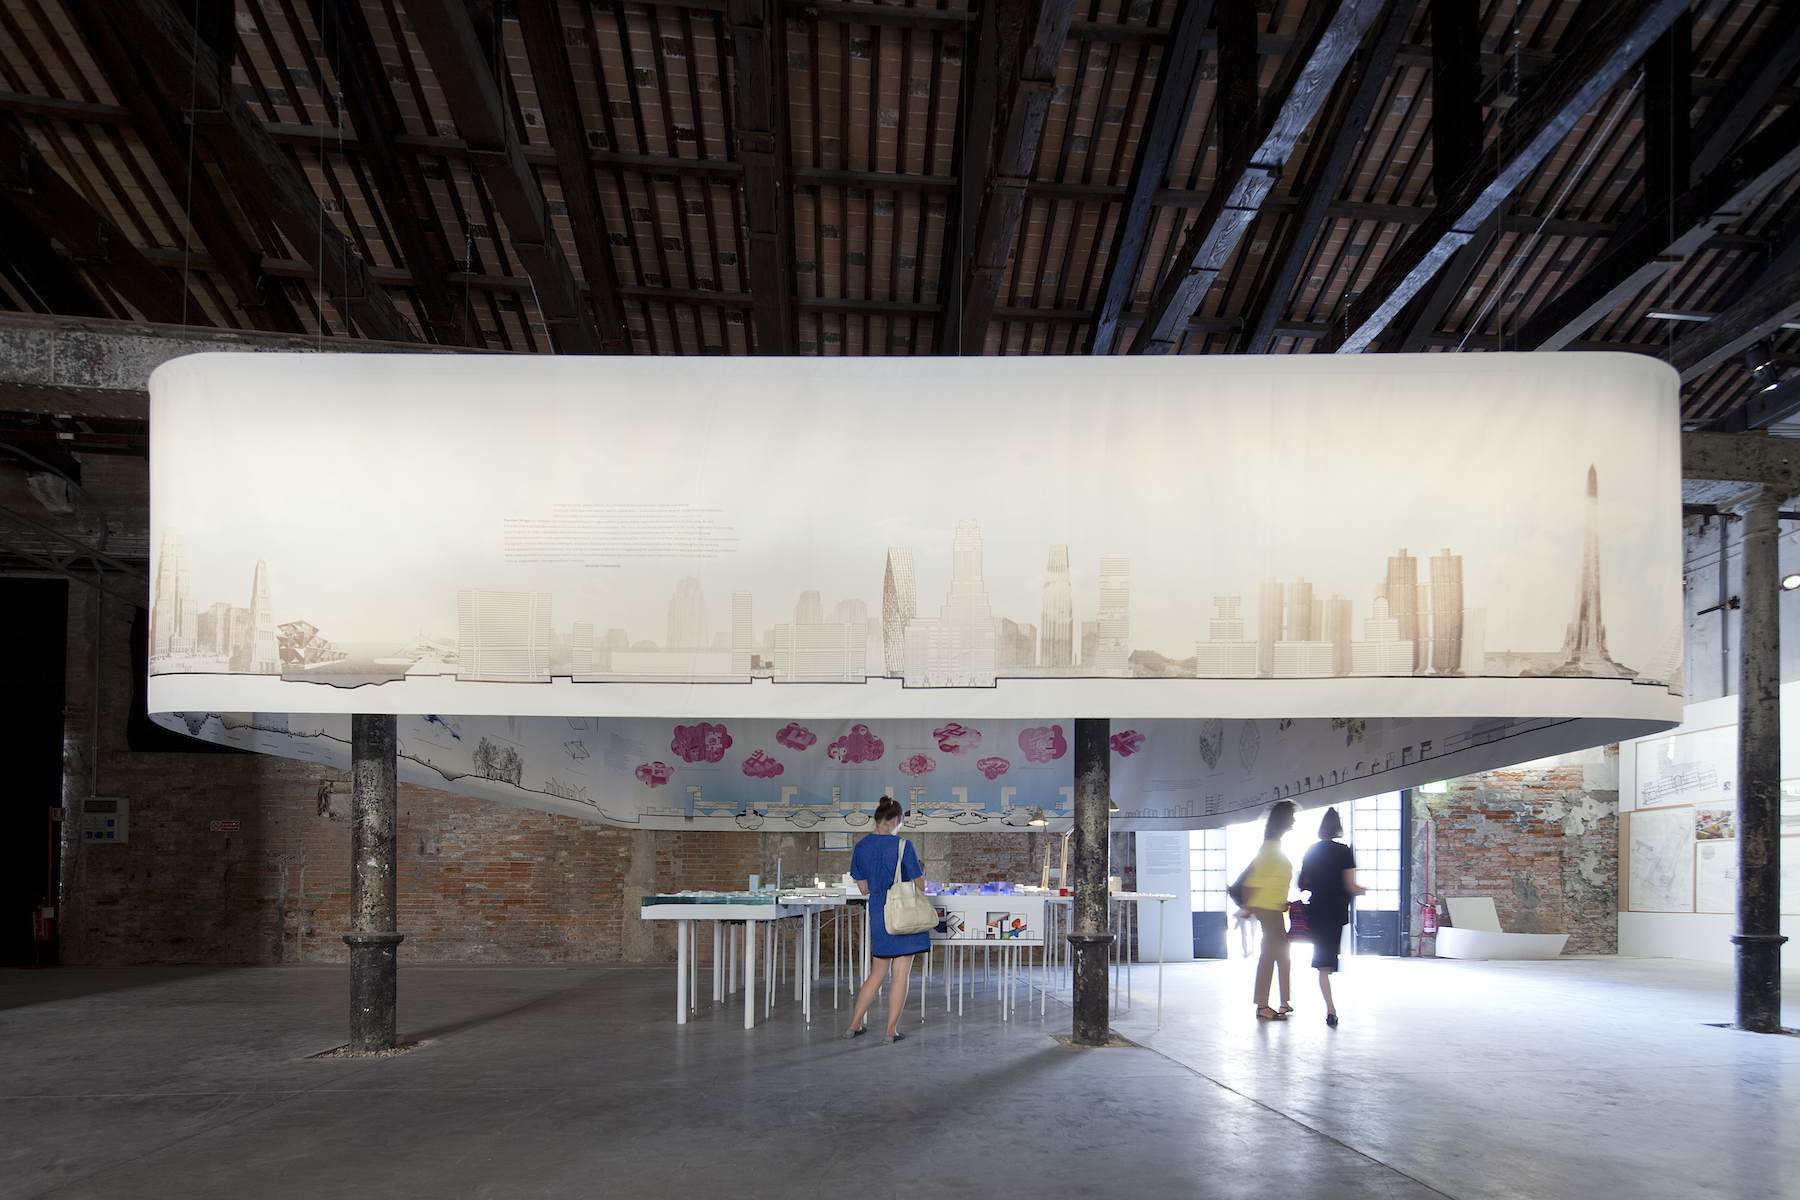 exhibition at the 13 th international architecture biennale in venice